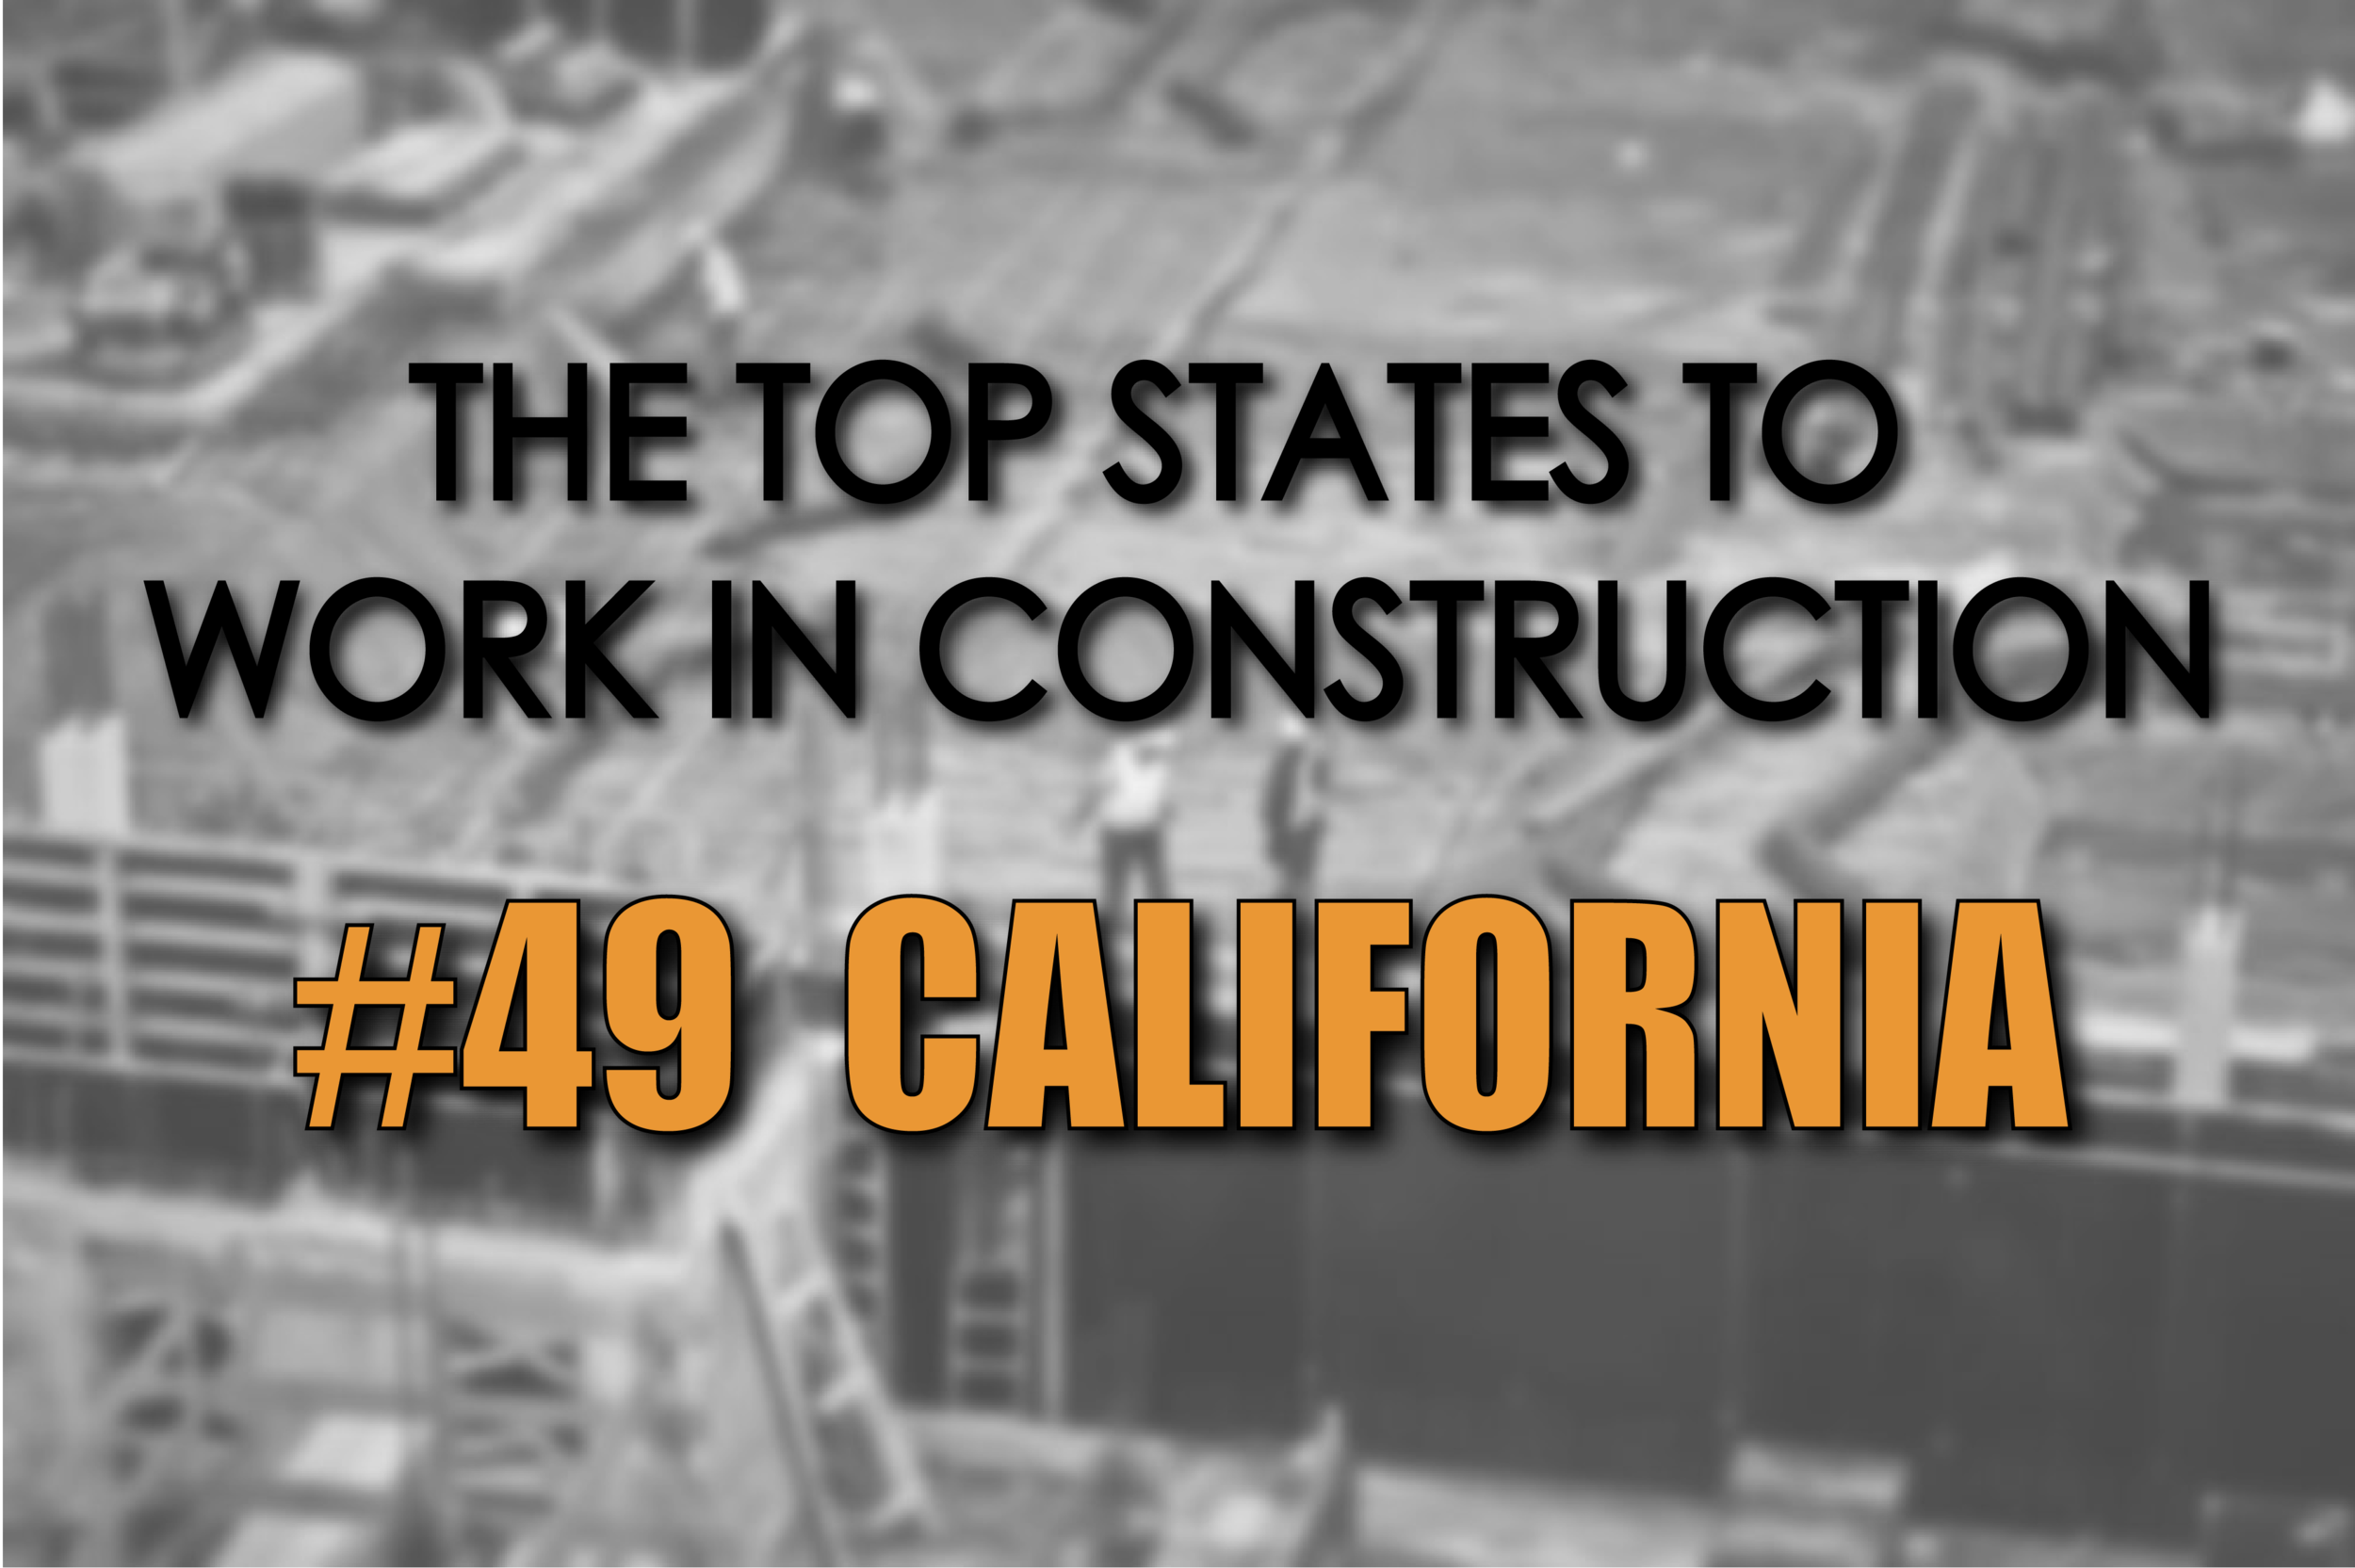 California best states to work in construction